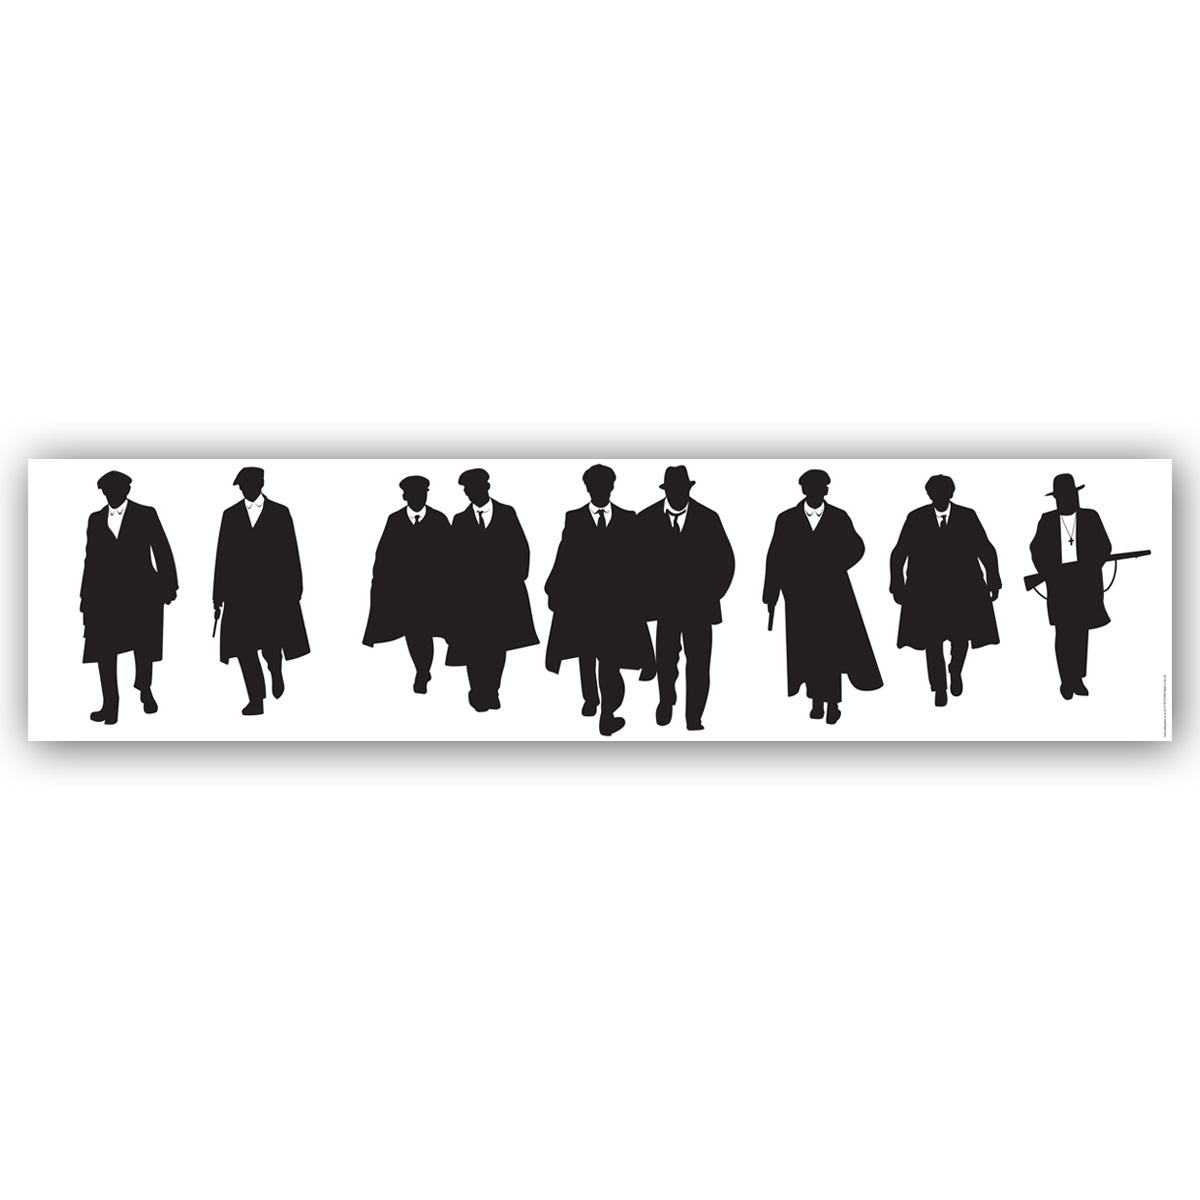 Peaky Blinders Silhouettes Banner Decoration - 1.2m